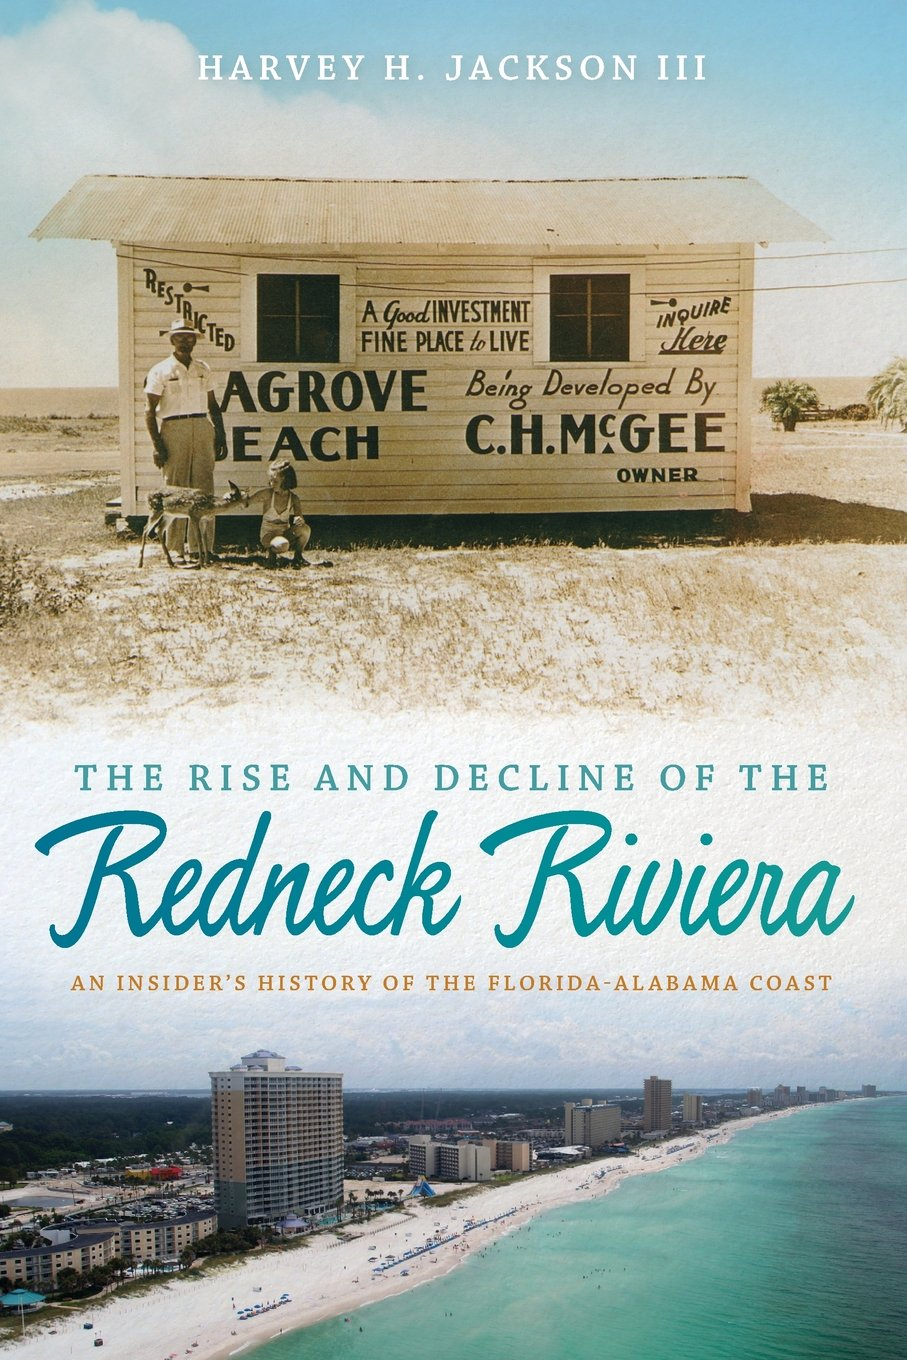 Download The Rise and Decline of the Redneck Riviera: An Insider's History of the Florida-Alabama Coast ebook